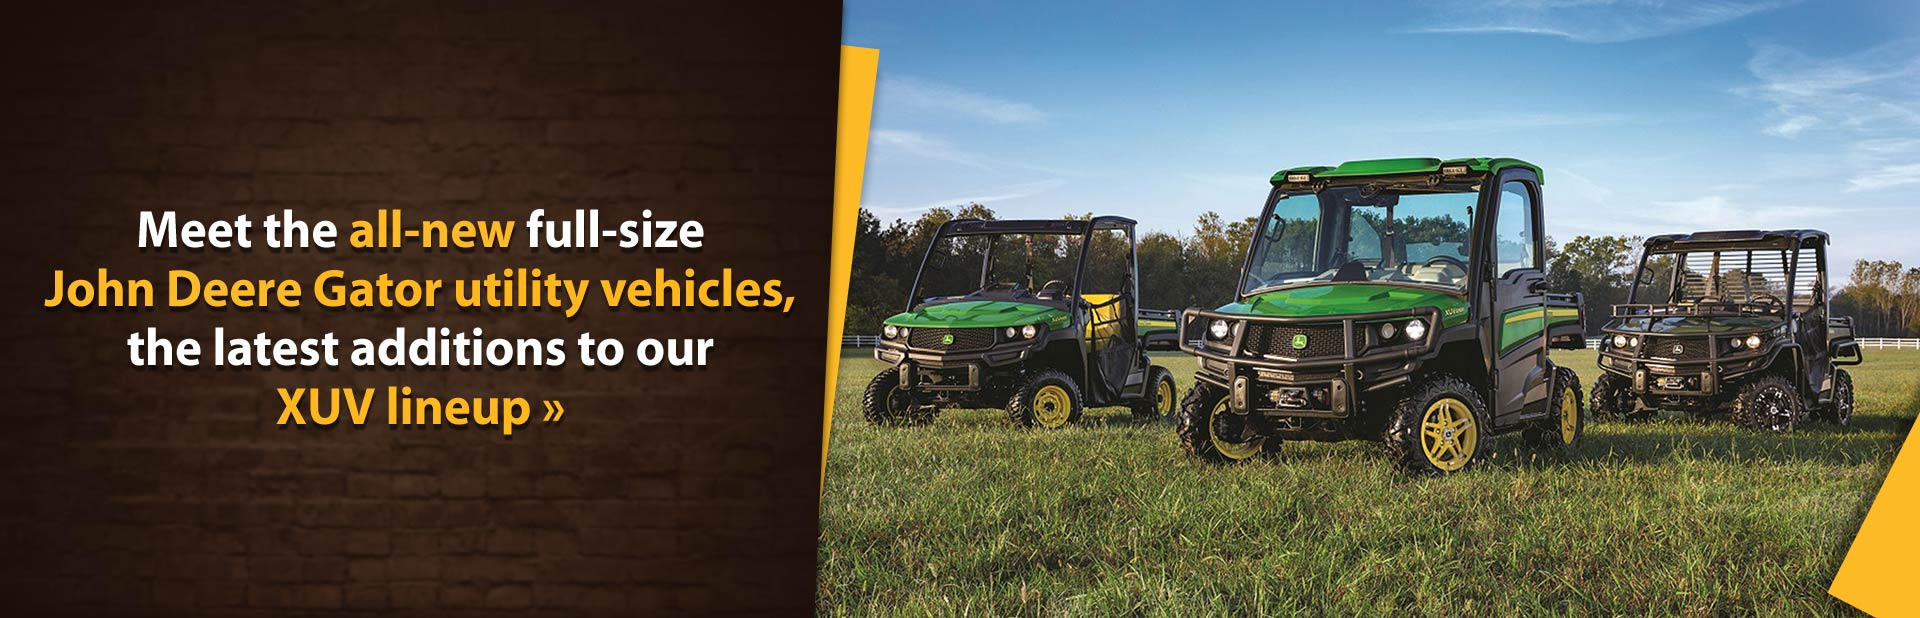 Meet the all-new full-size John Deere Gator utility vehicles, the latest additions to our XUV lineup.